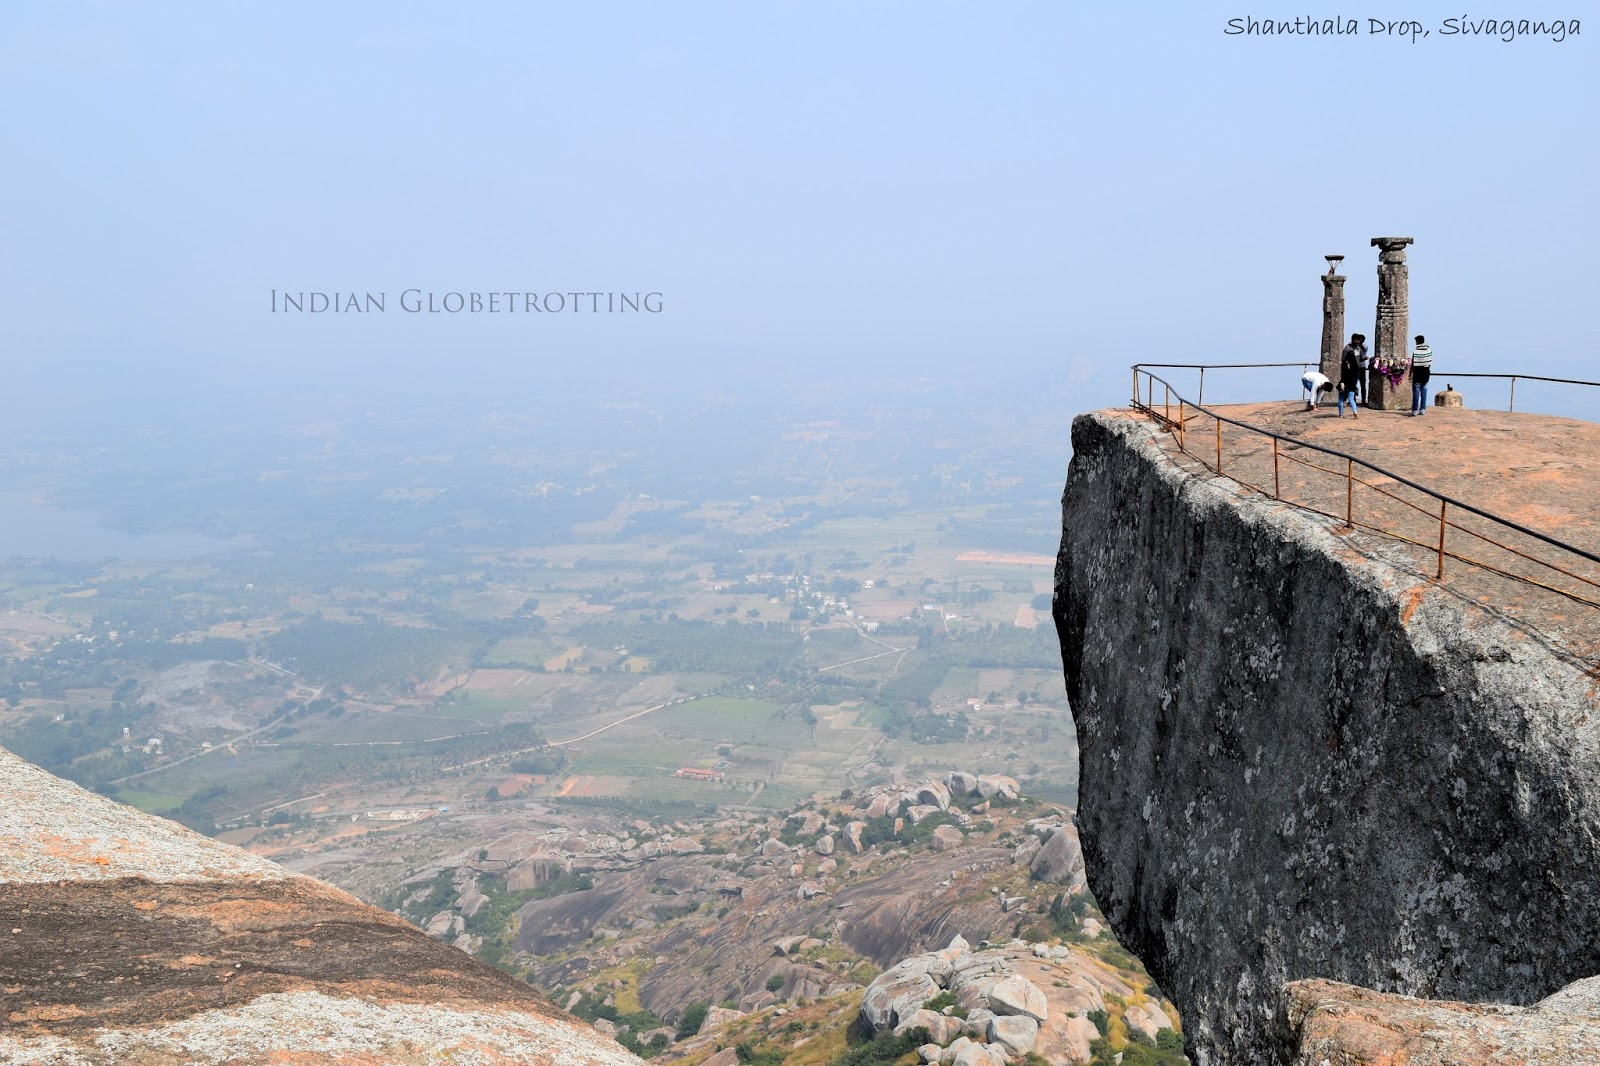 Shanthala Point where queen shanthala committed suicide